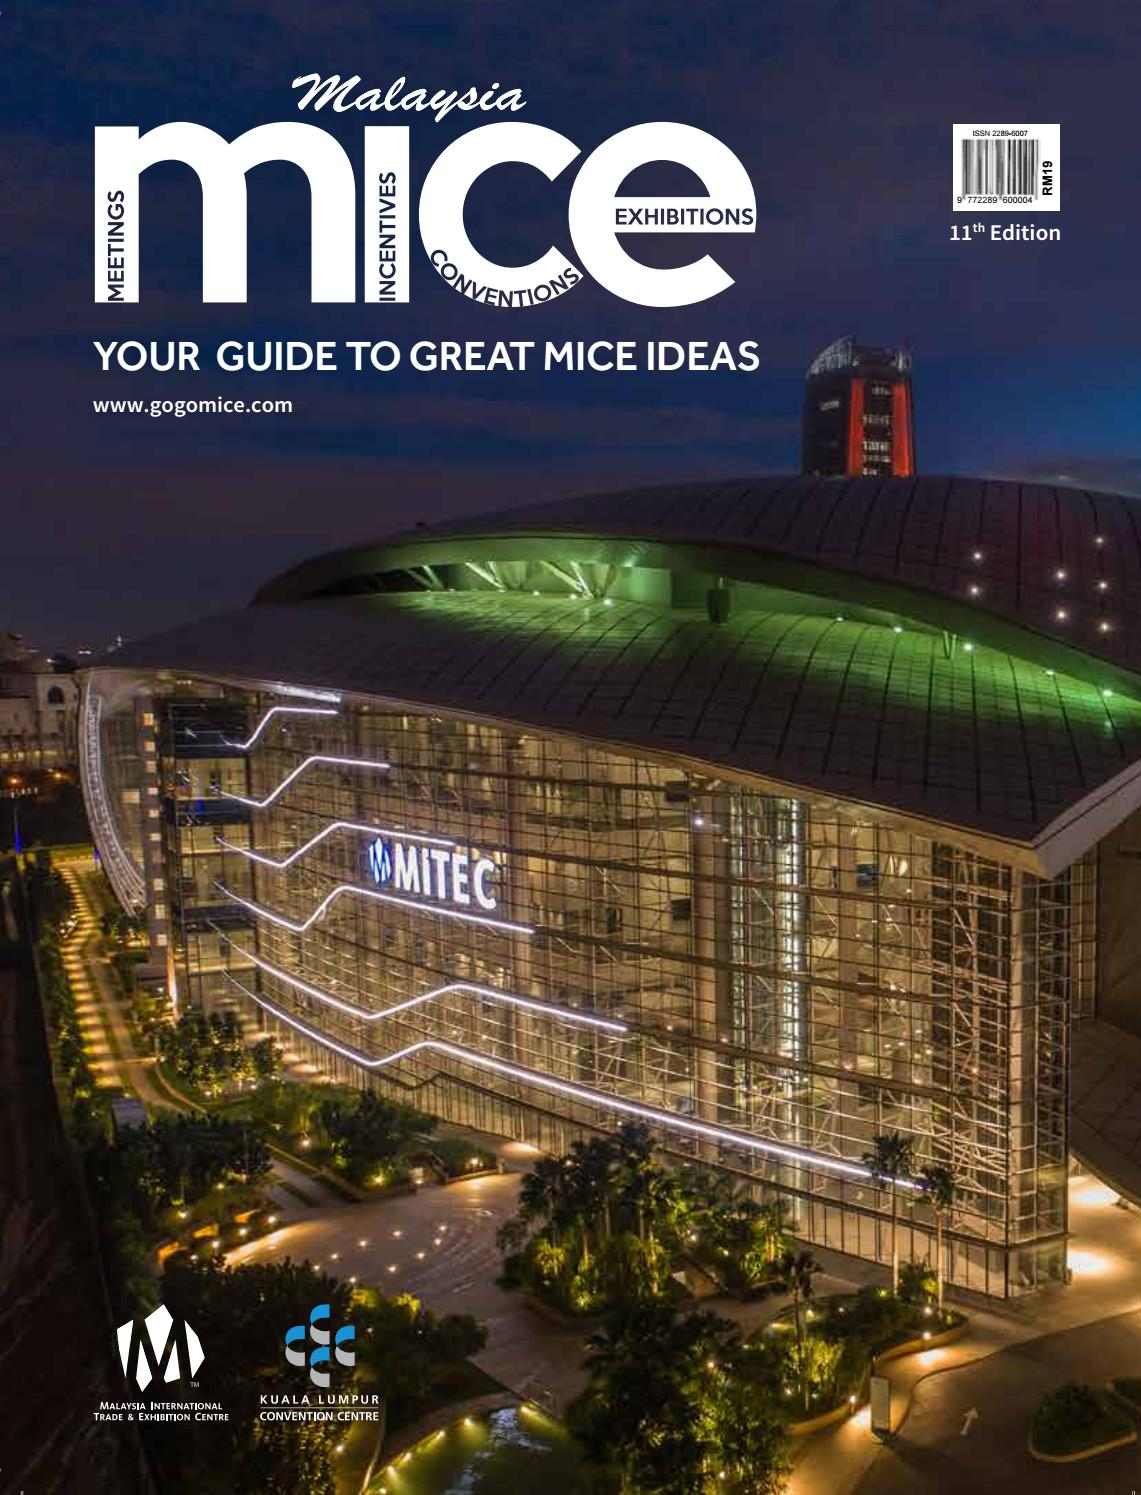 Malaysia Mice 2018 2019 11th Edition By Tourism Publications Corporation Sdn Bhd Issuu